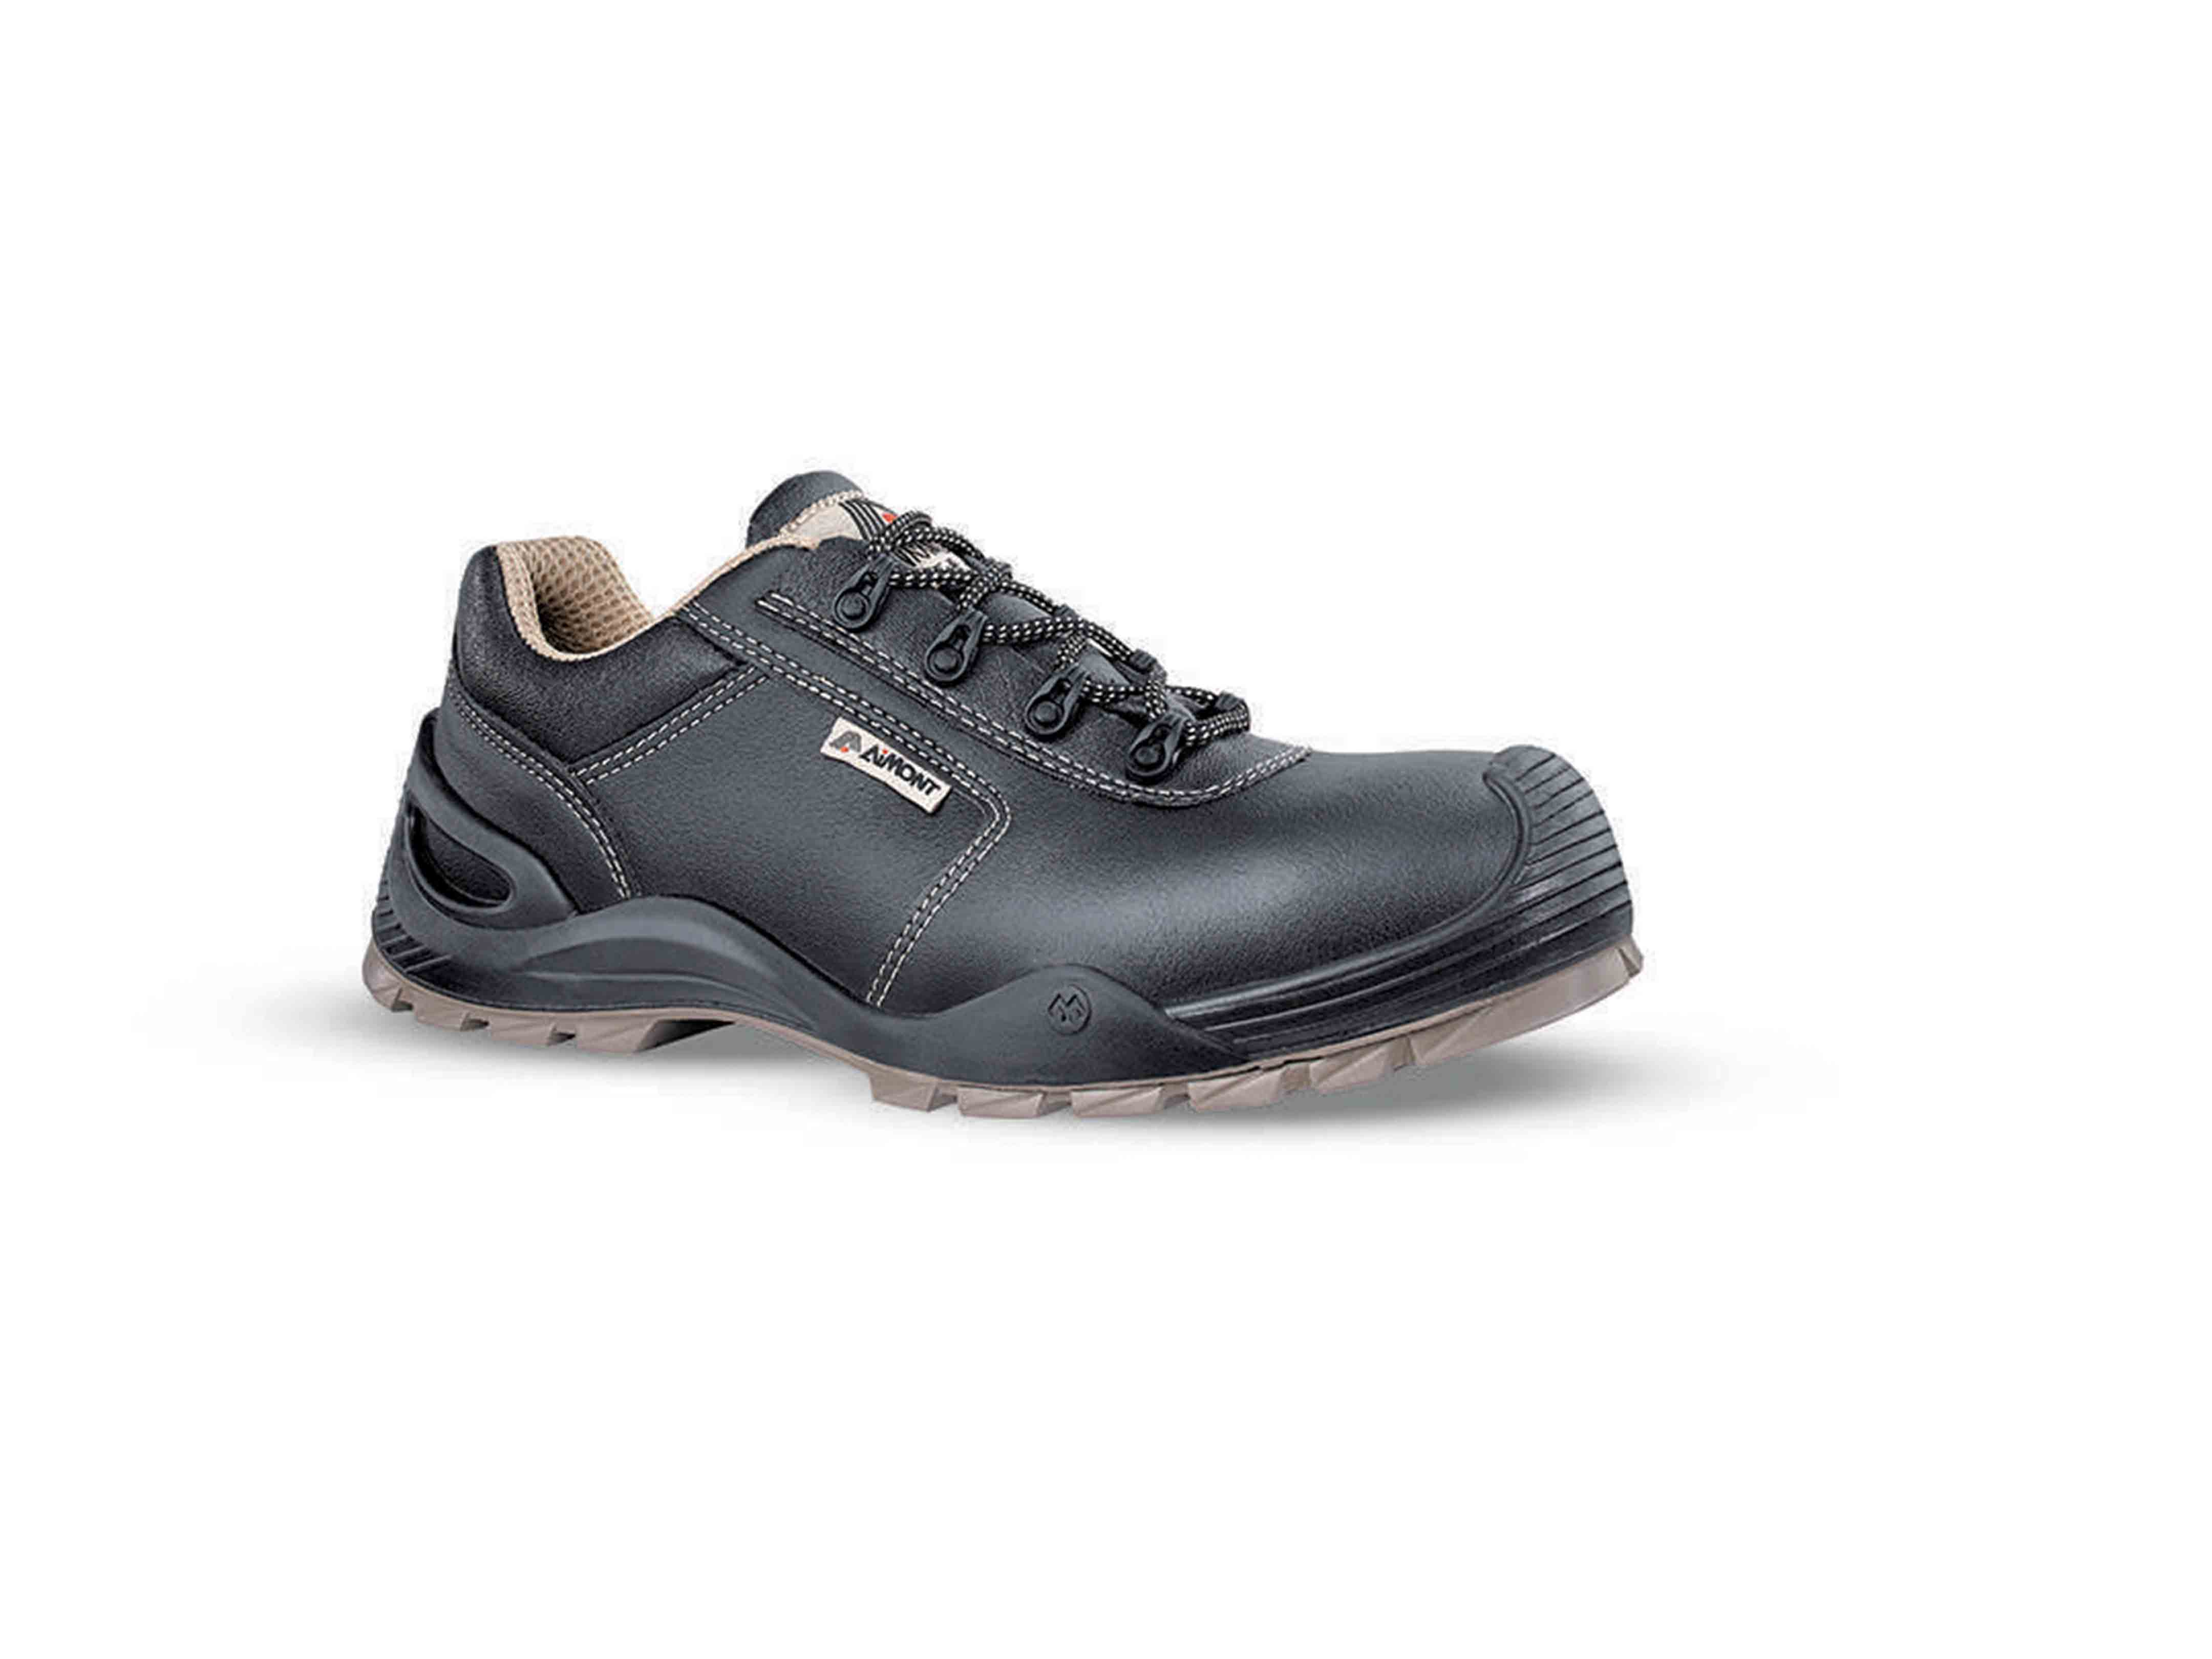 AiMont NITRUS Safety Laced-Up Shoes, S3